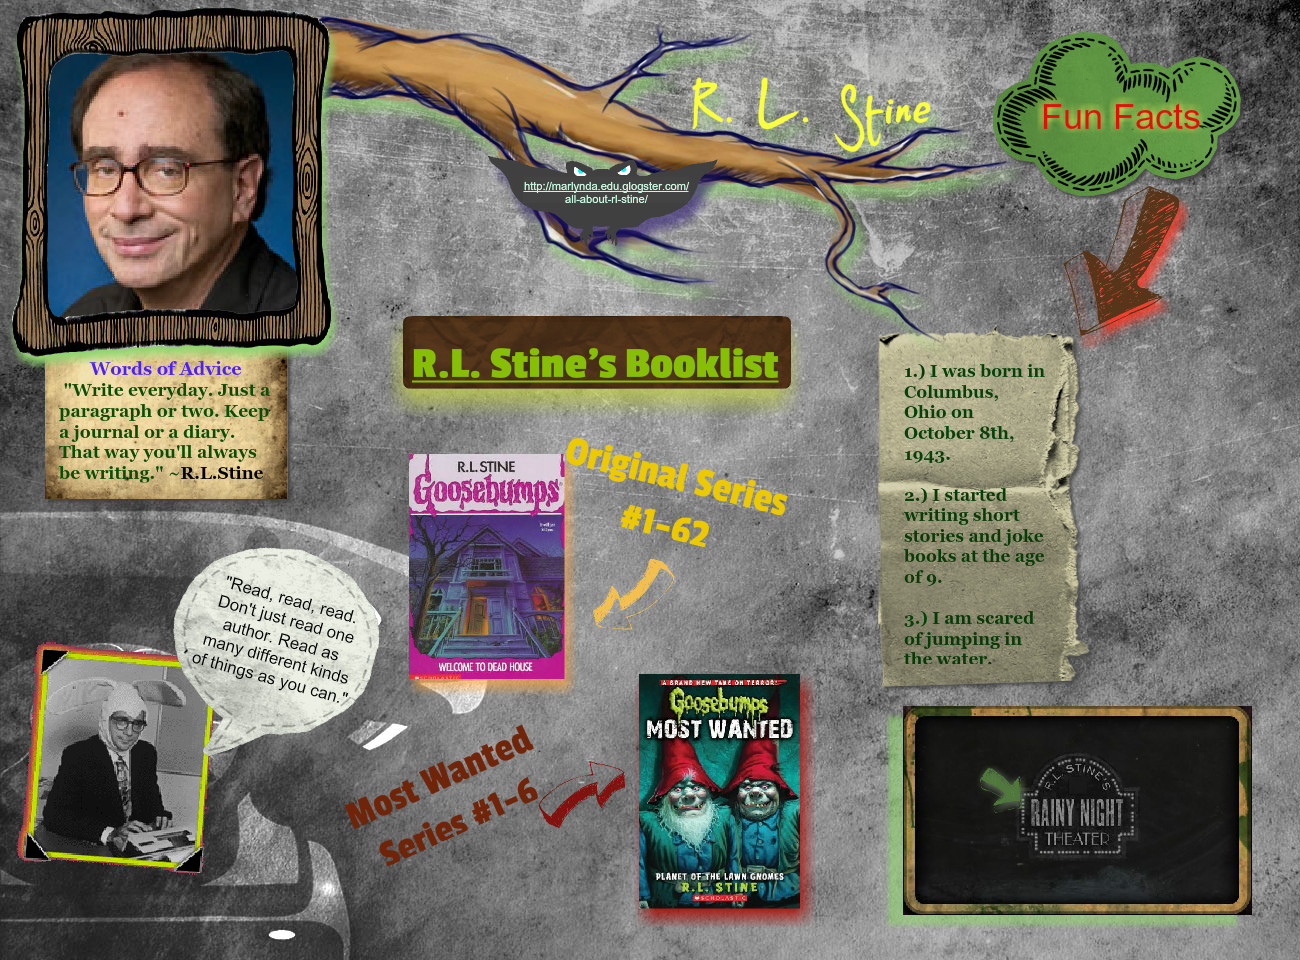 All about R.L. Stine